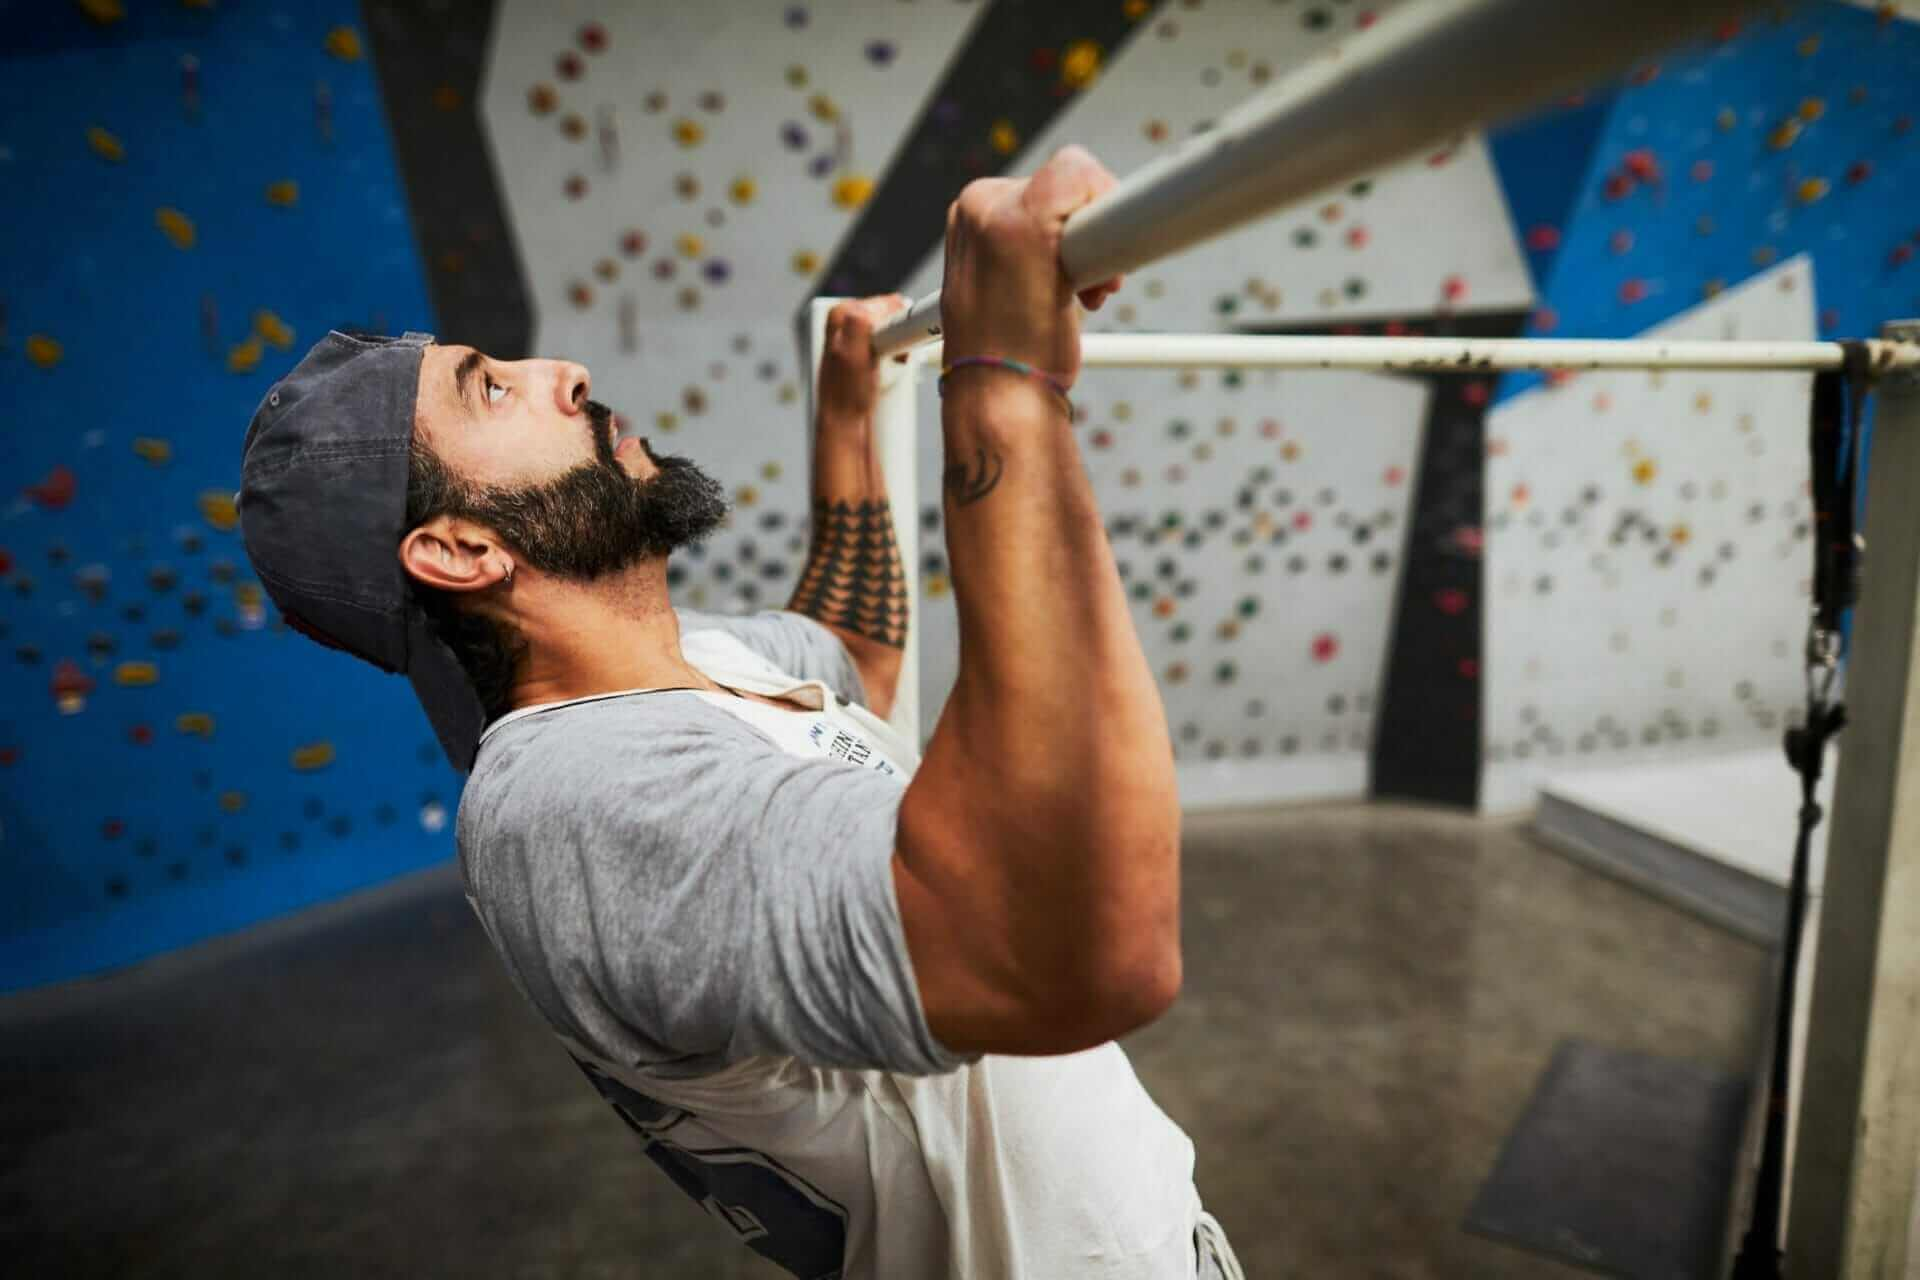 How To Get Your First Pullup Without Shoulder Pain | The 5 Best Exercises